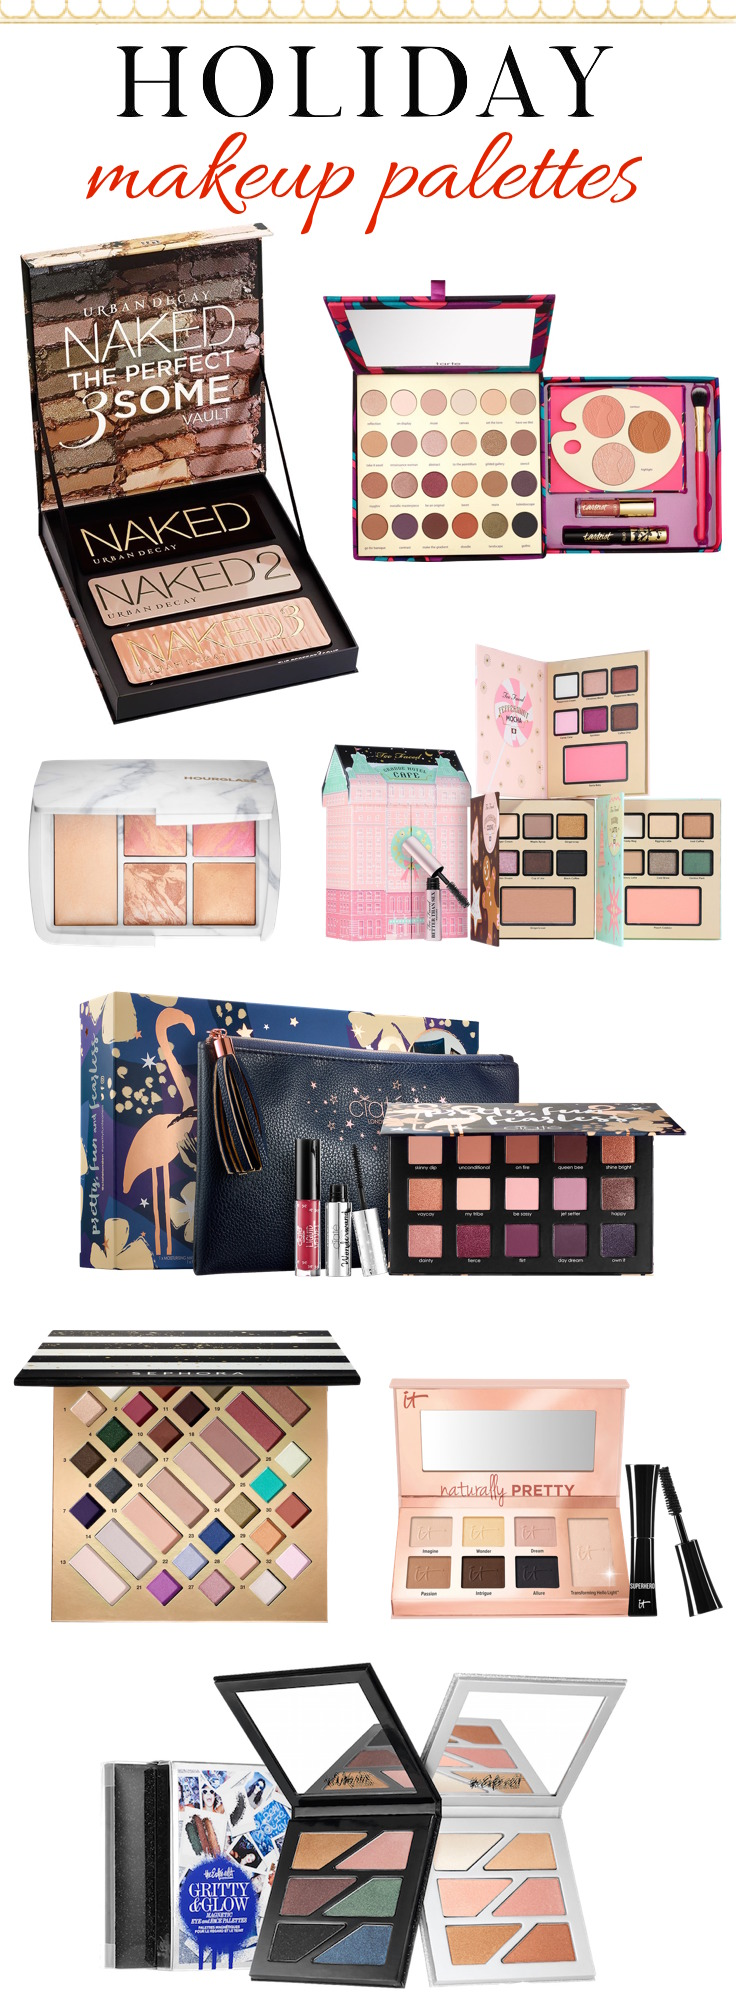 The prettiest palettes you need on your holiday wish list!